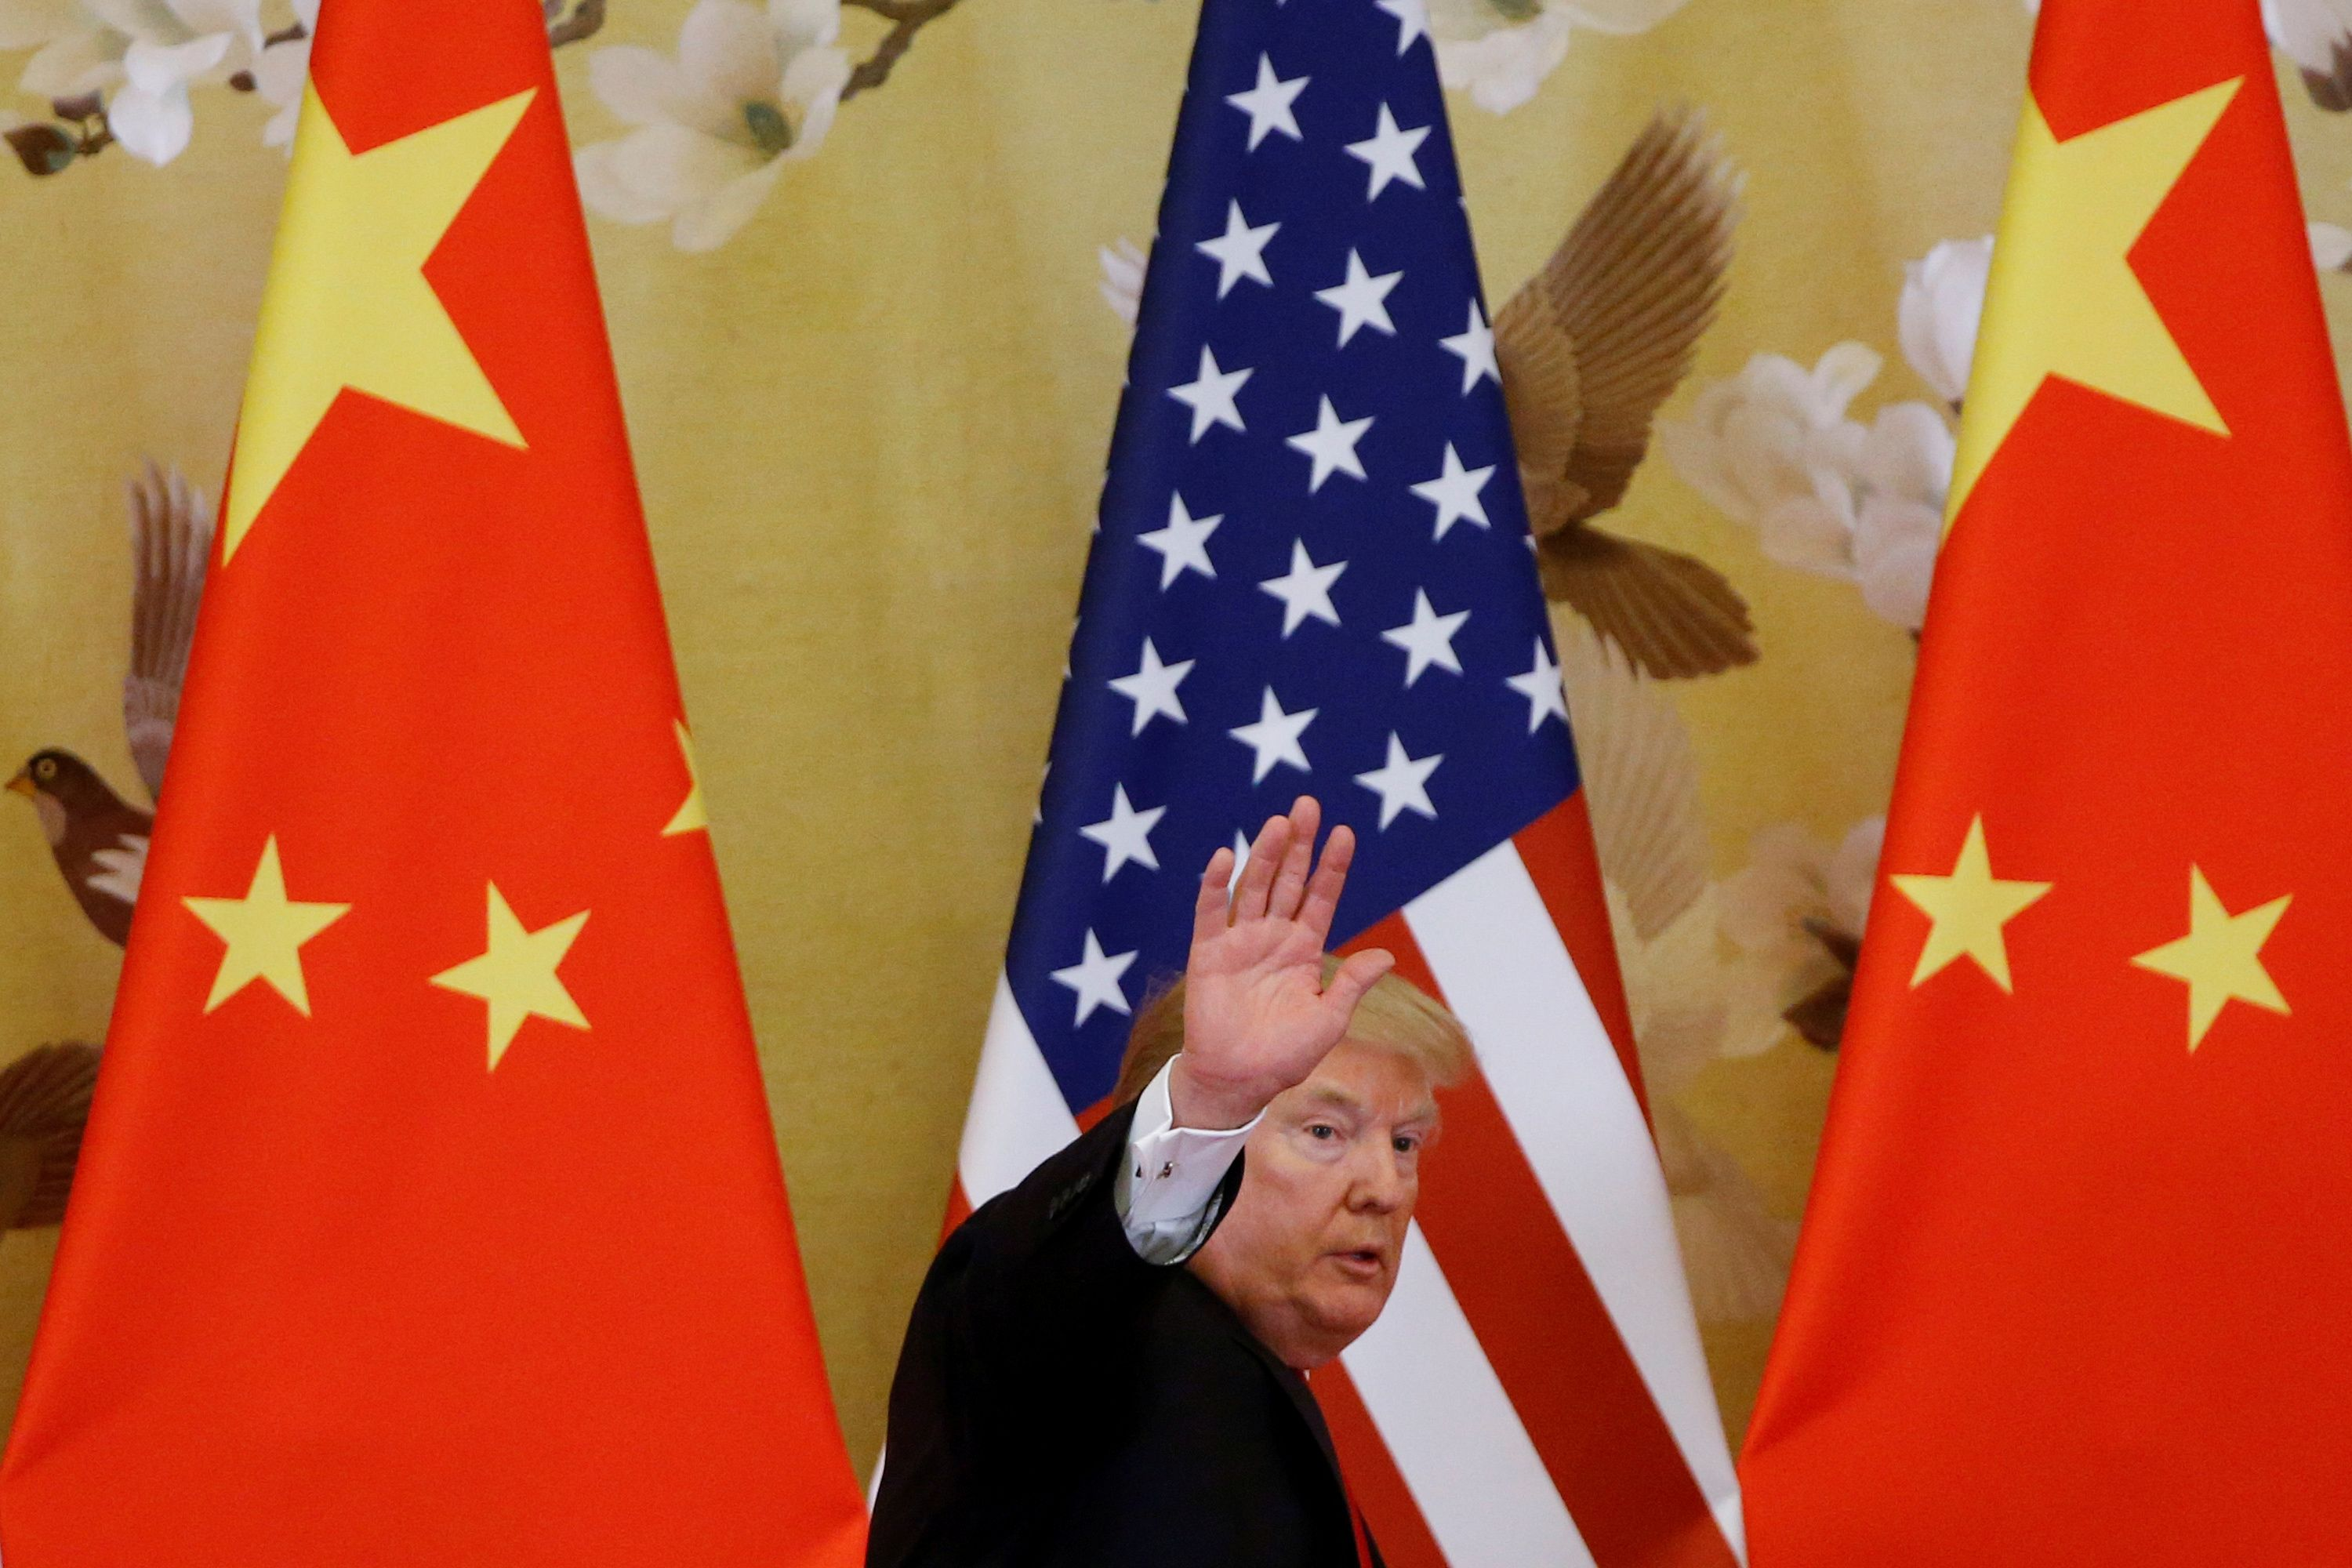 Trump tariff increases hurting US businesses in China, survey says